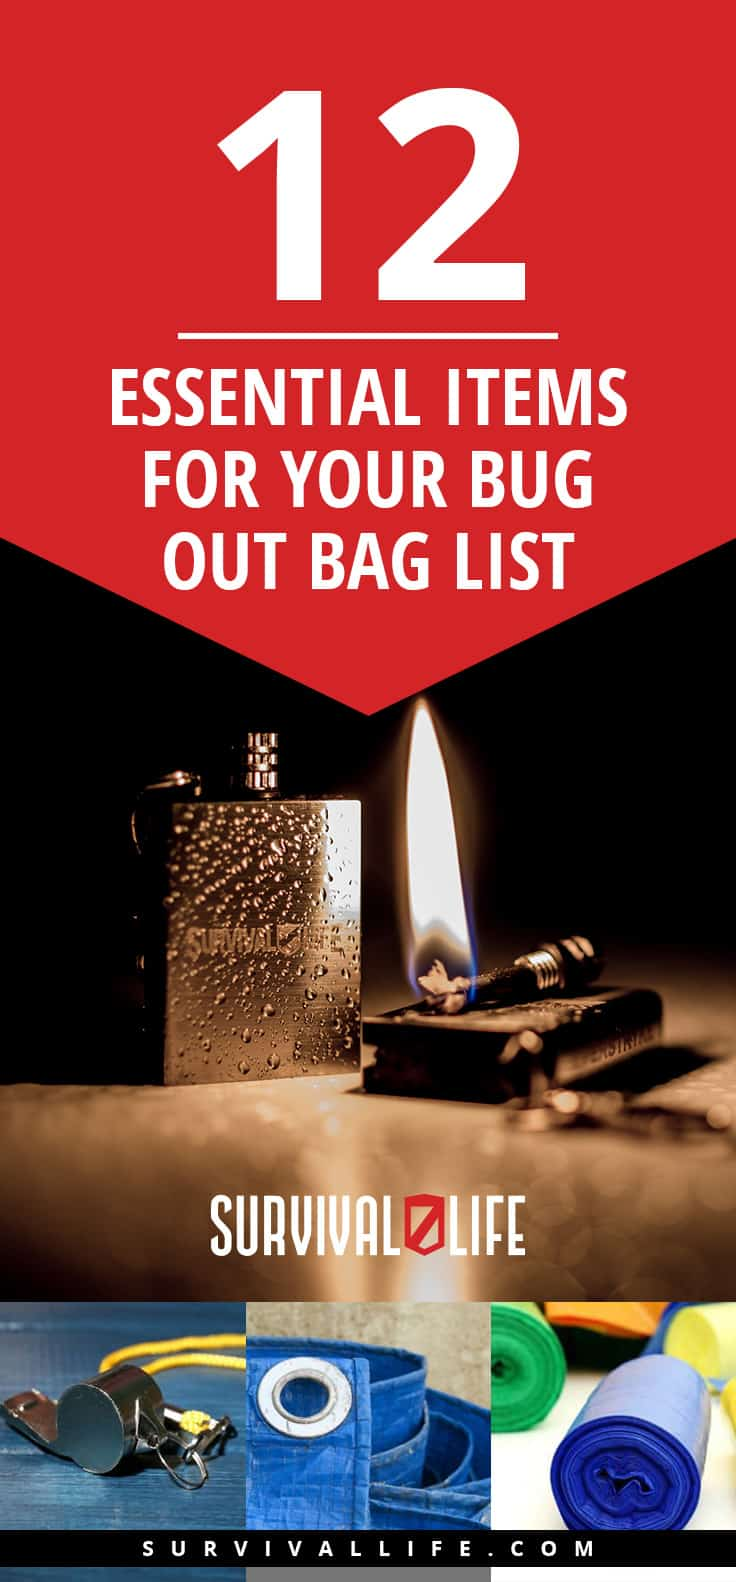 12 Essential Items for Bug Out Bag